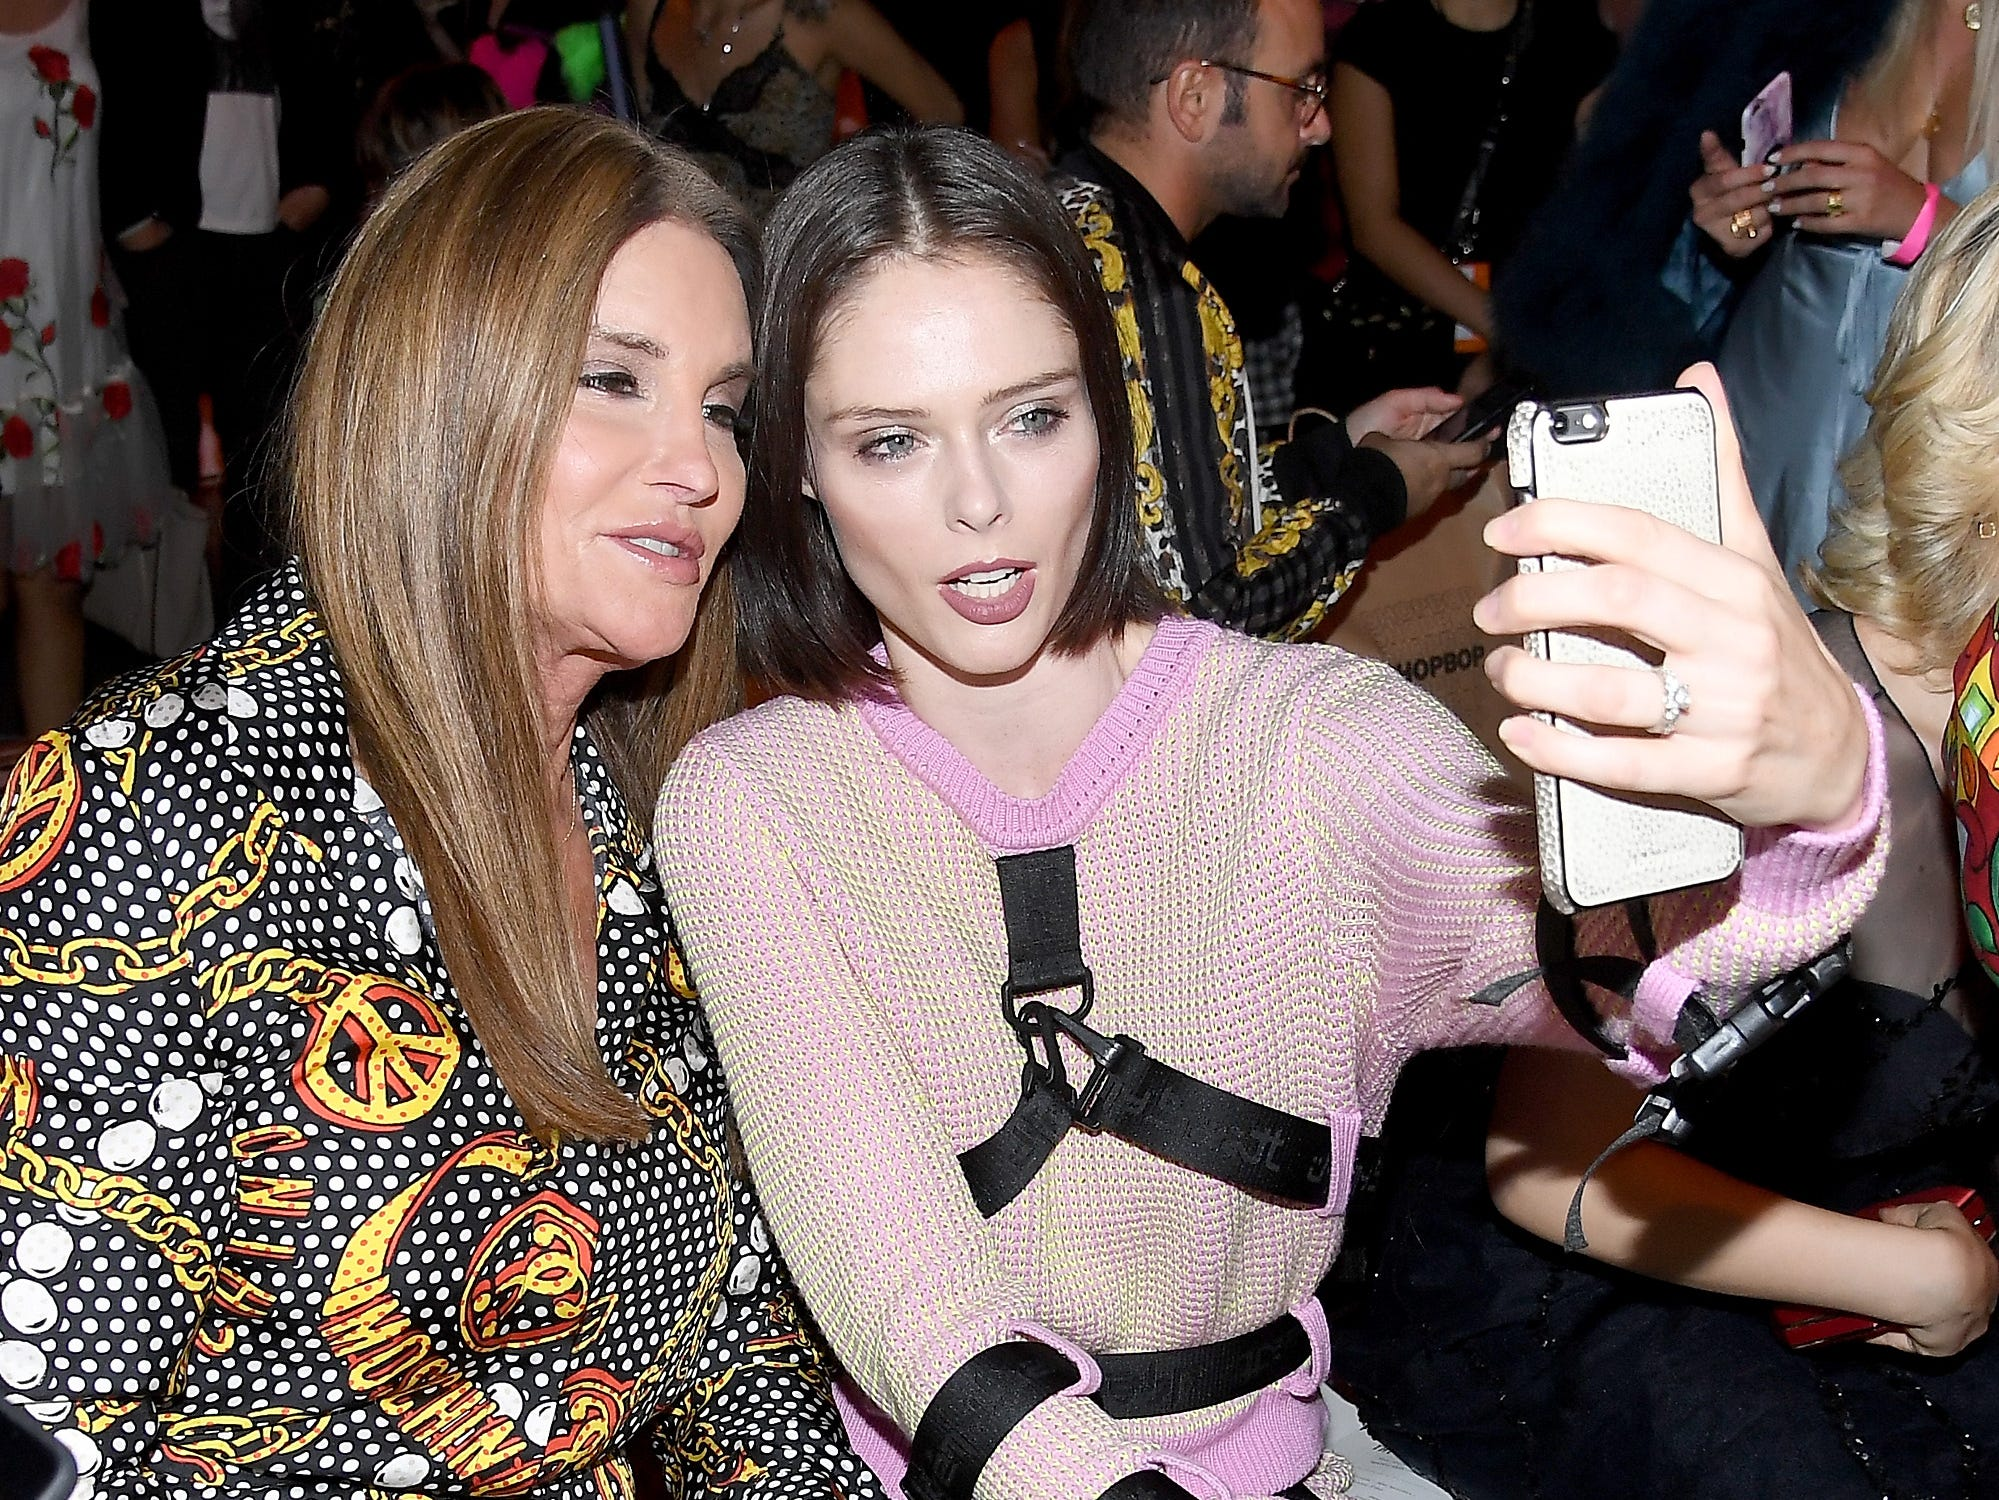 NEW YORK, NY - SEPTEMBER 06:  Caitlyn Jenner and Coco Rocha attend the Jeremy Scott front row during New York Fashion Week: The Shows at Gallery I at Spring Studios on September 6, 2018 in New York City.  (Photo by Nicholas Hunt/Getty Images for NYFW: The Shows) ORG XMIT: 775215639 ORIG FILE ID: 1028020212